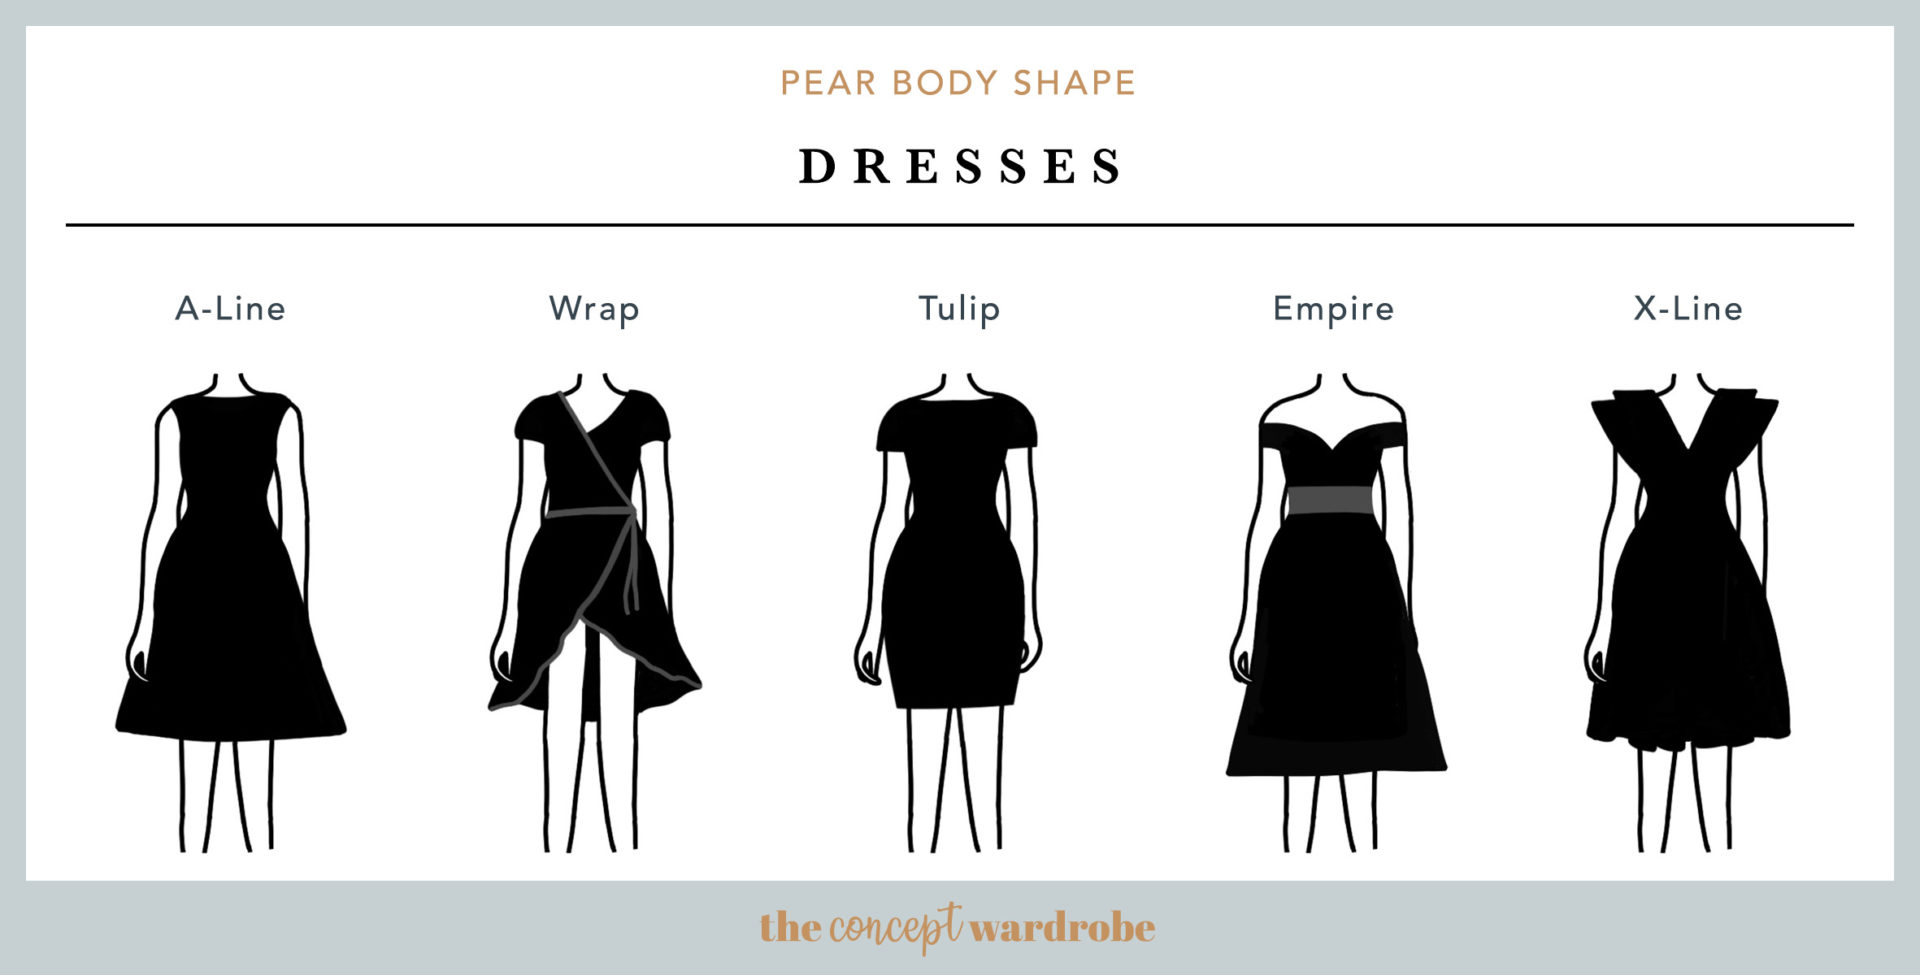 Pear Body Shape Dresses - the concept wardrobe